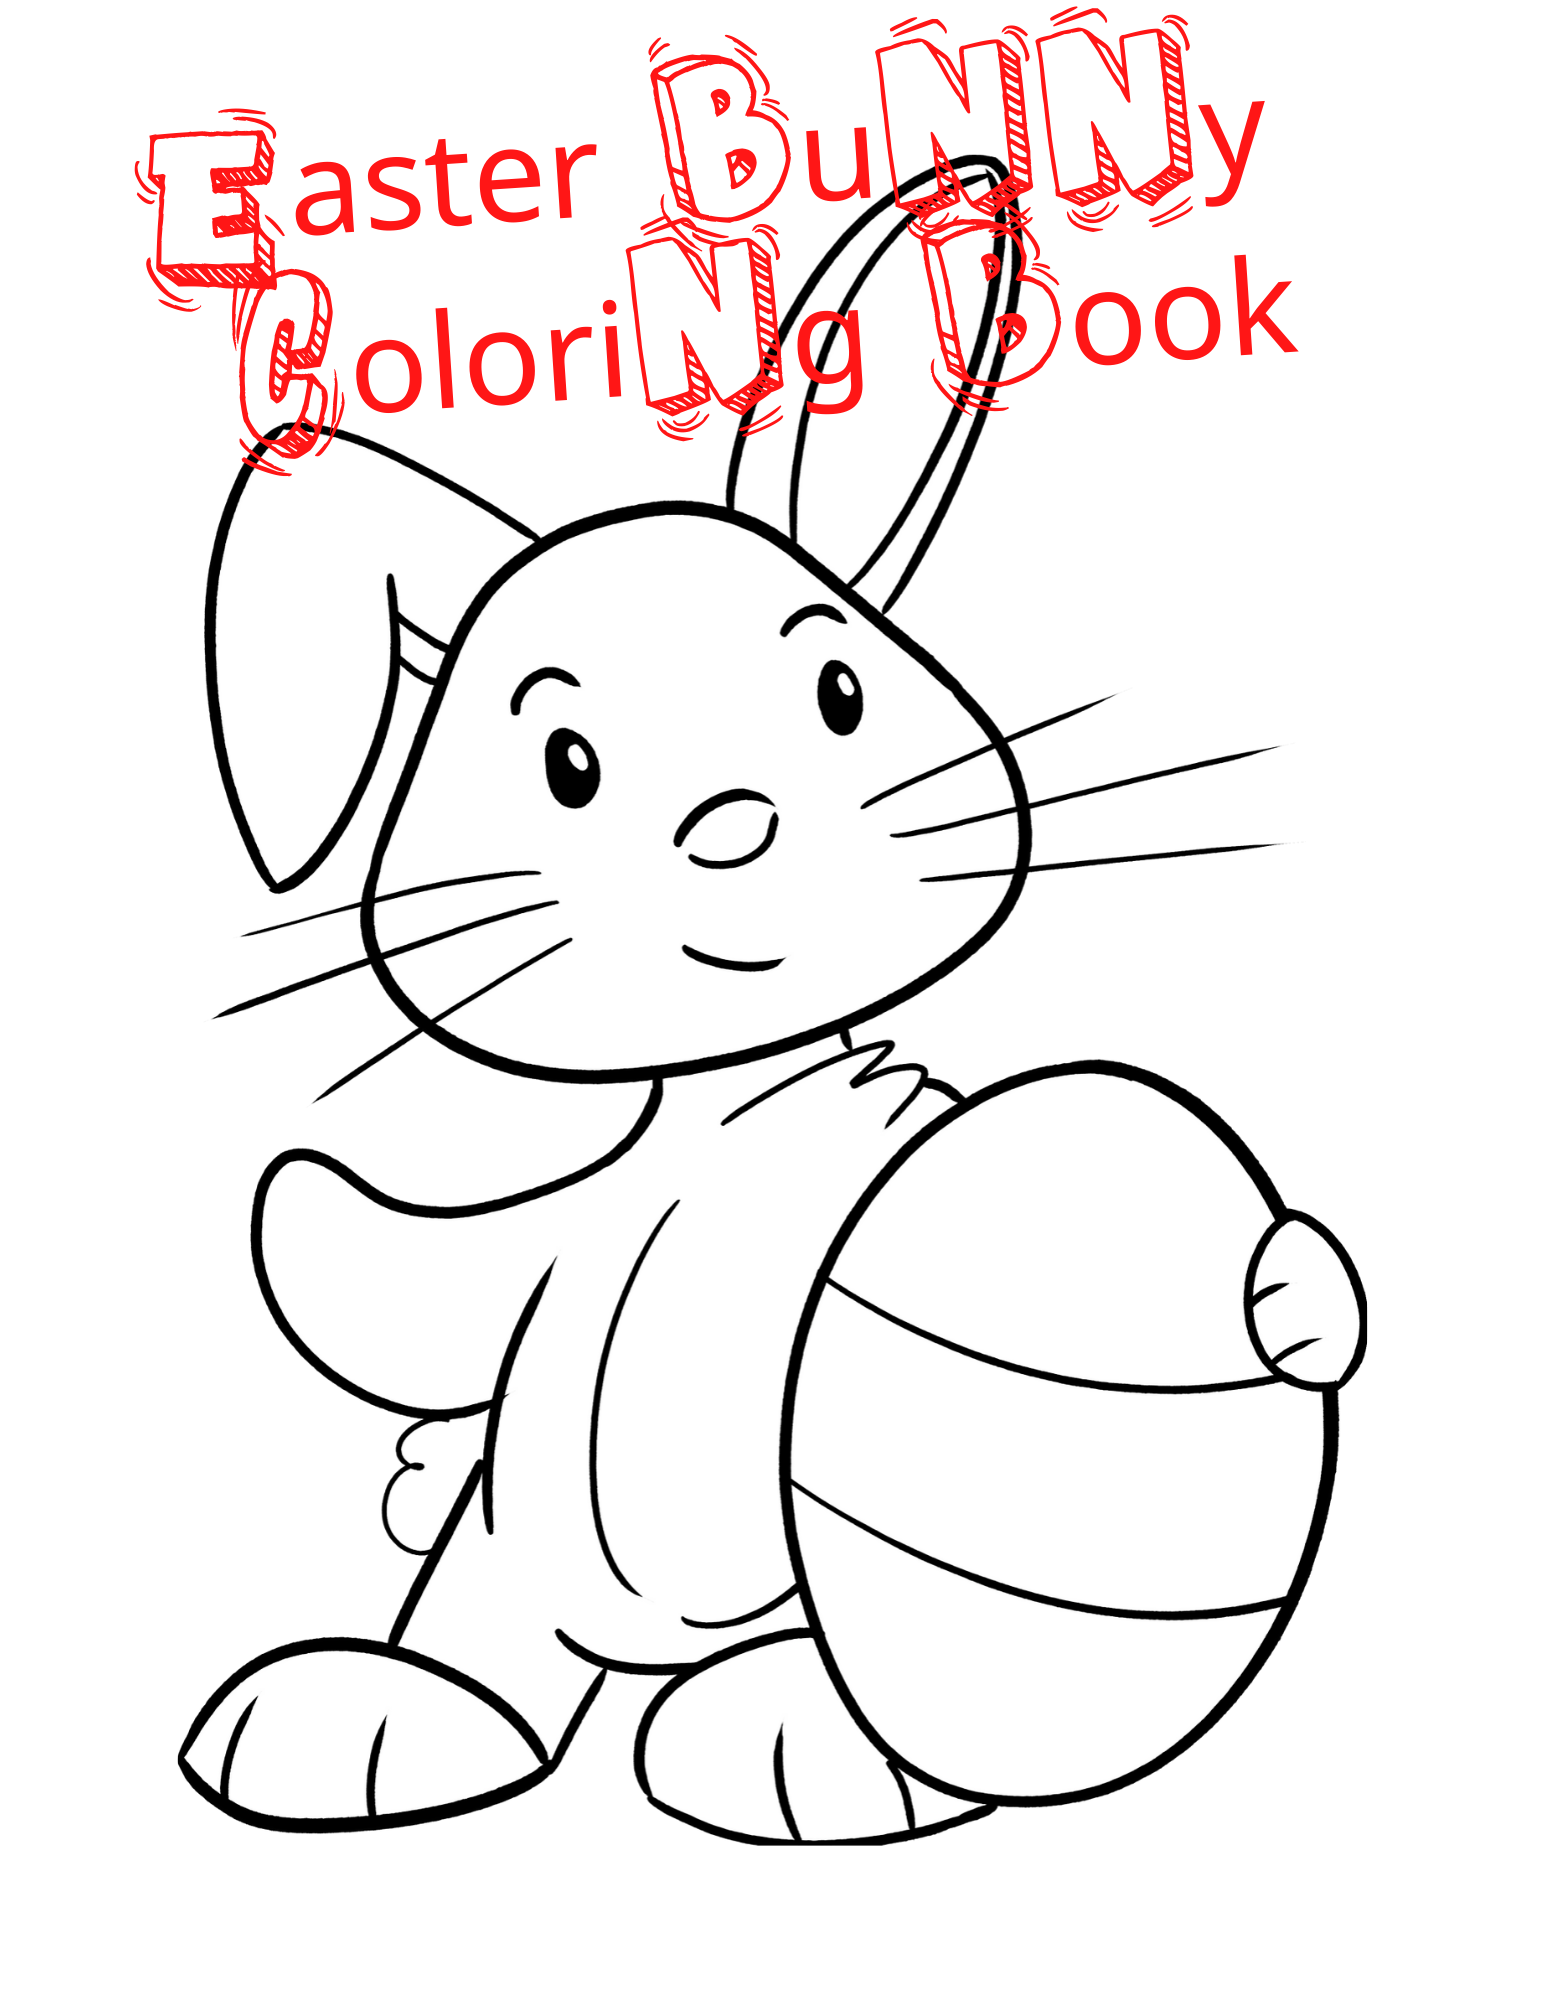 Easter Bunny Coloring Book For Kids Easter Coloring Book Toddler Coloring Book Easter Bunny Colouring